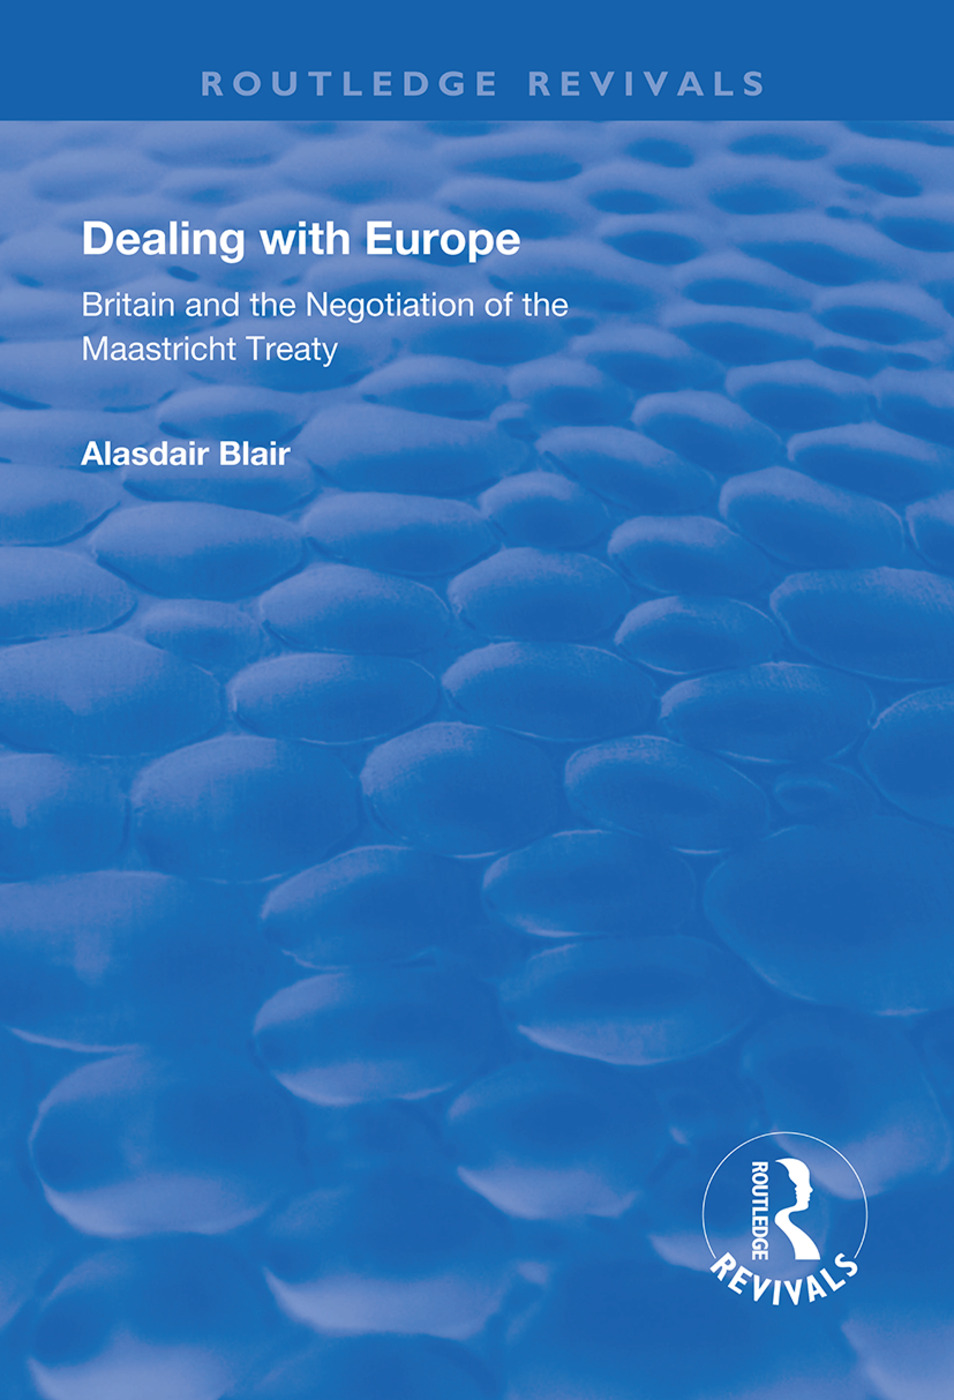 Dealing with Europe: Britain and the Negotiation of the Maastricht Treaty book cover